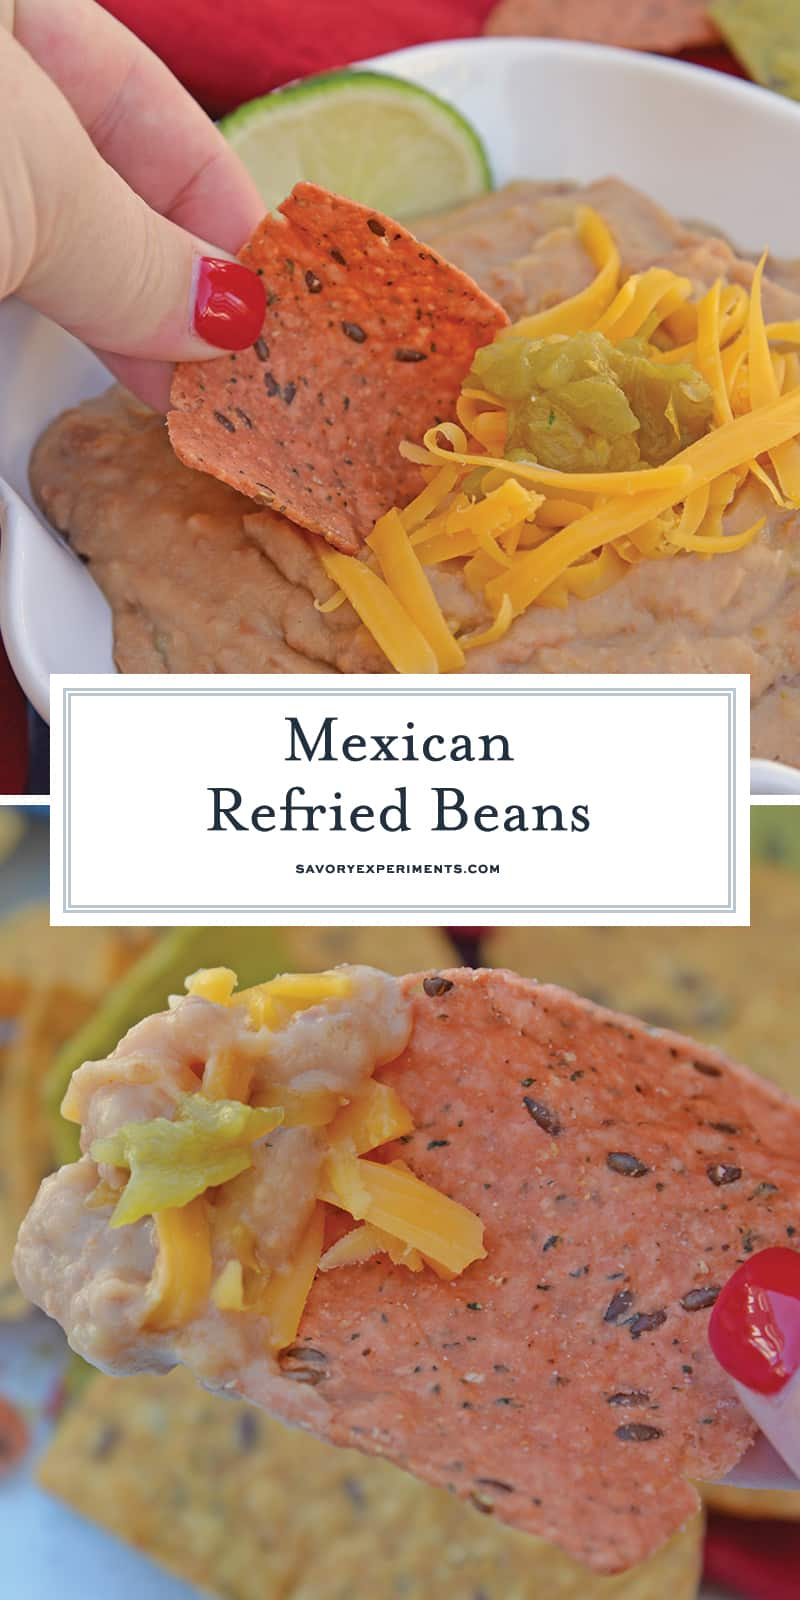 Mexican Refried Beans are an easy homemade refried bean recipe using pinto beans, green chilies, cheese and Mexican spices. Ready in just 15 minutes! #refriedbeans #mexicansidedish www.savoryexperiments.com